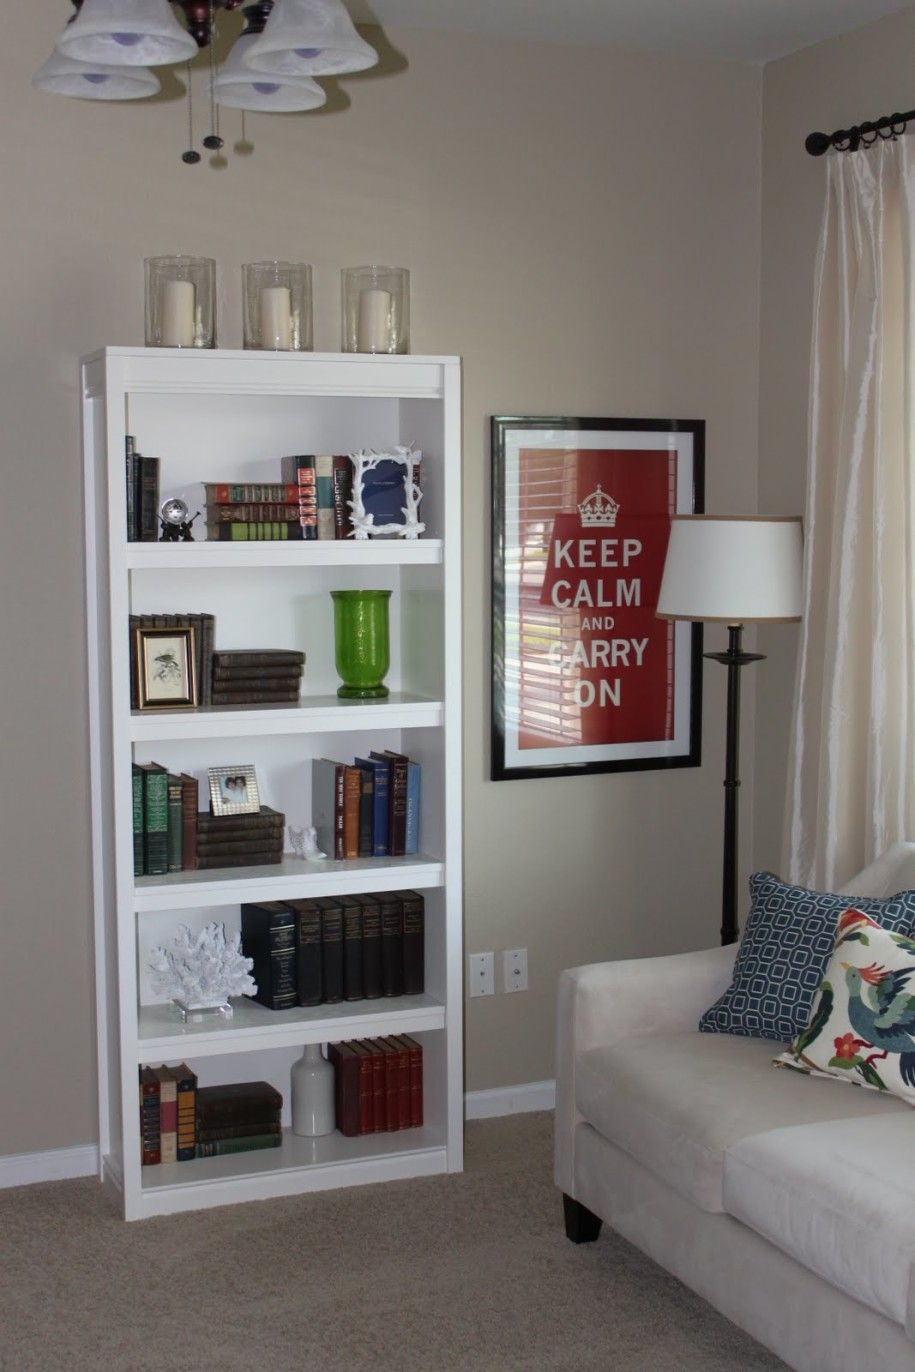 Simple Homemade Bookshelves Concept For Reading Room Tiny White Bookcase In Living Room Simple Hom Bookshelves In Living Room Bookshelf Design Bookshelf Decor